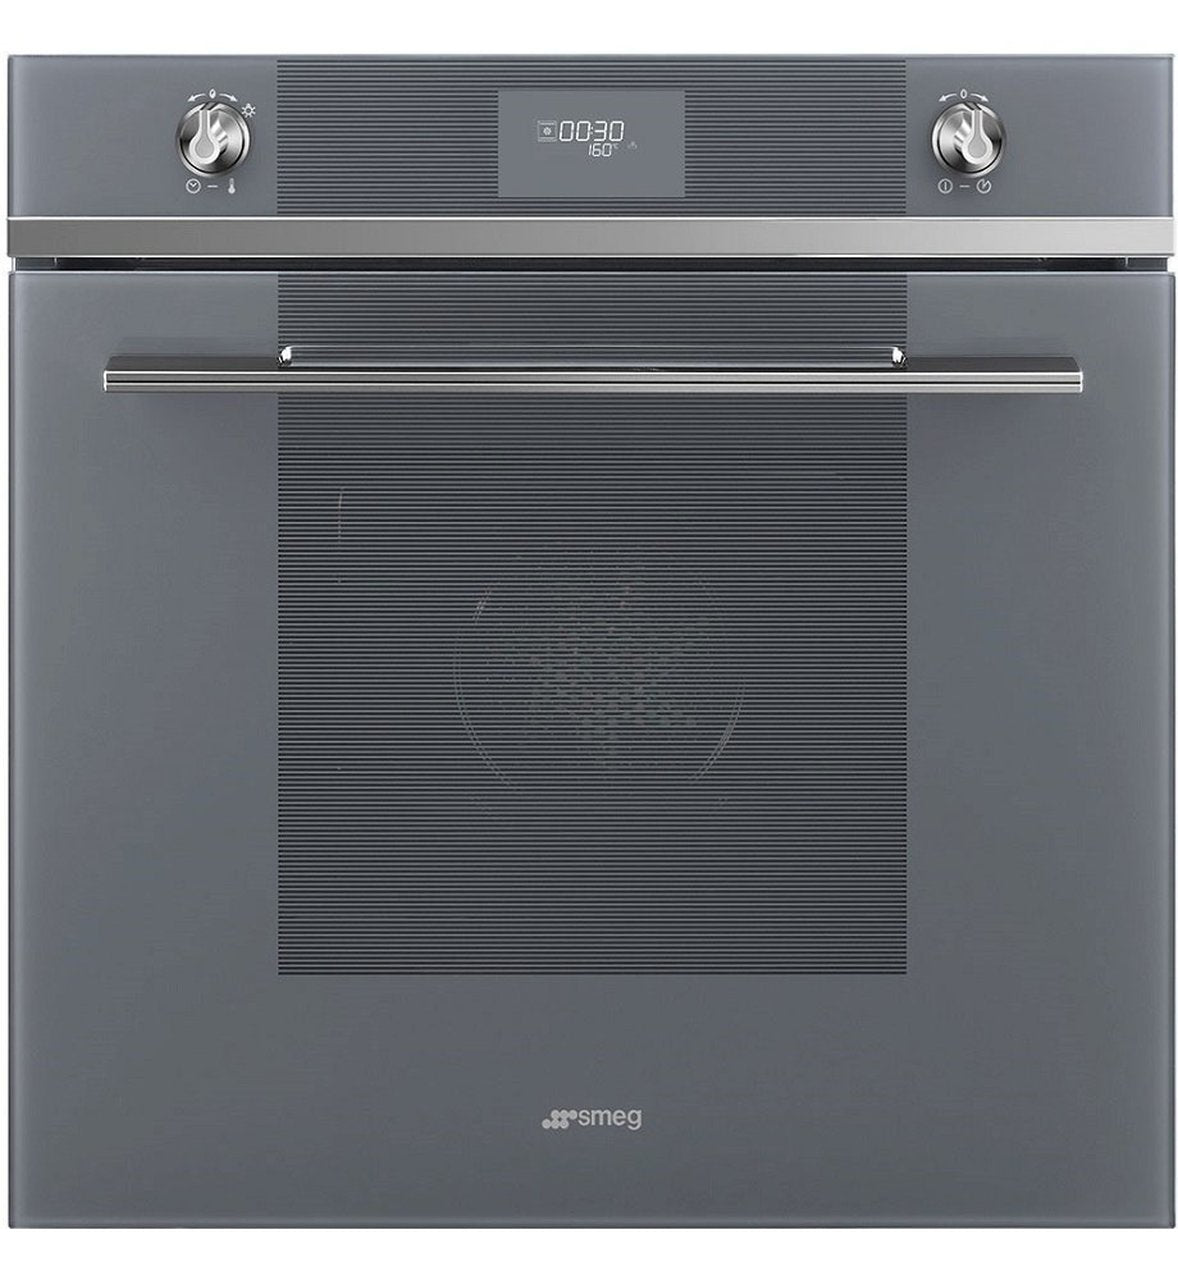 SMEG 60CM STAINLESS STEEL BUILT-IN OVEN